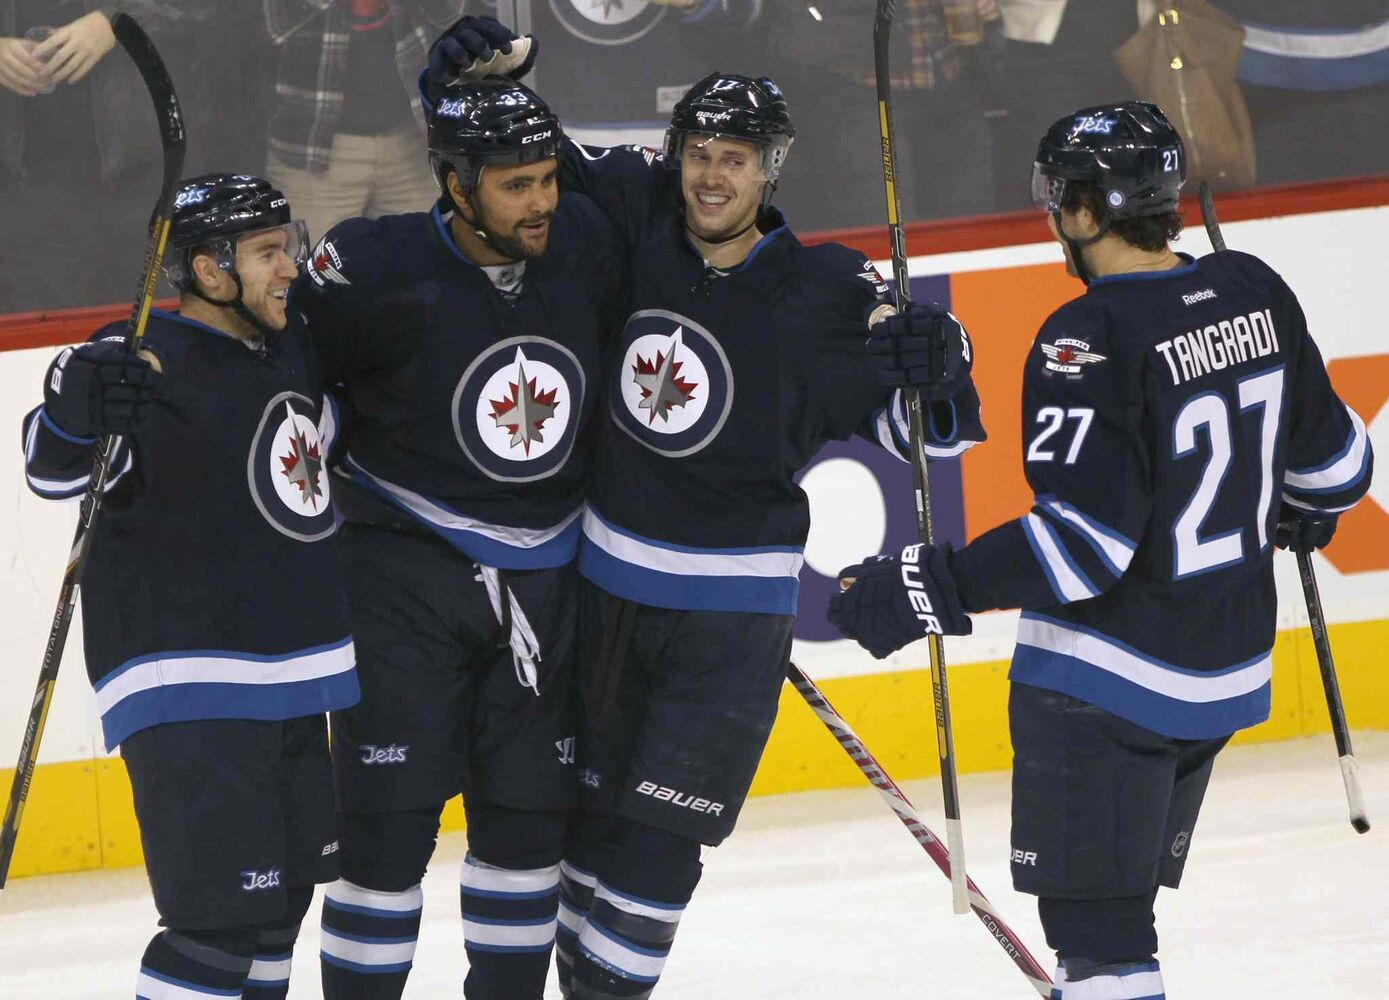 Winnipeg Jets defenceman Dustin Byfuglien (second from left) is congratulated by teammates (from left) Grant Clitsome, James Wright, and Eric Tangradi after a first-period goal that initially given to Byfuglien but later credited to Tangradi. (Joe Bryksa / Winnipeg Free Press)